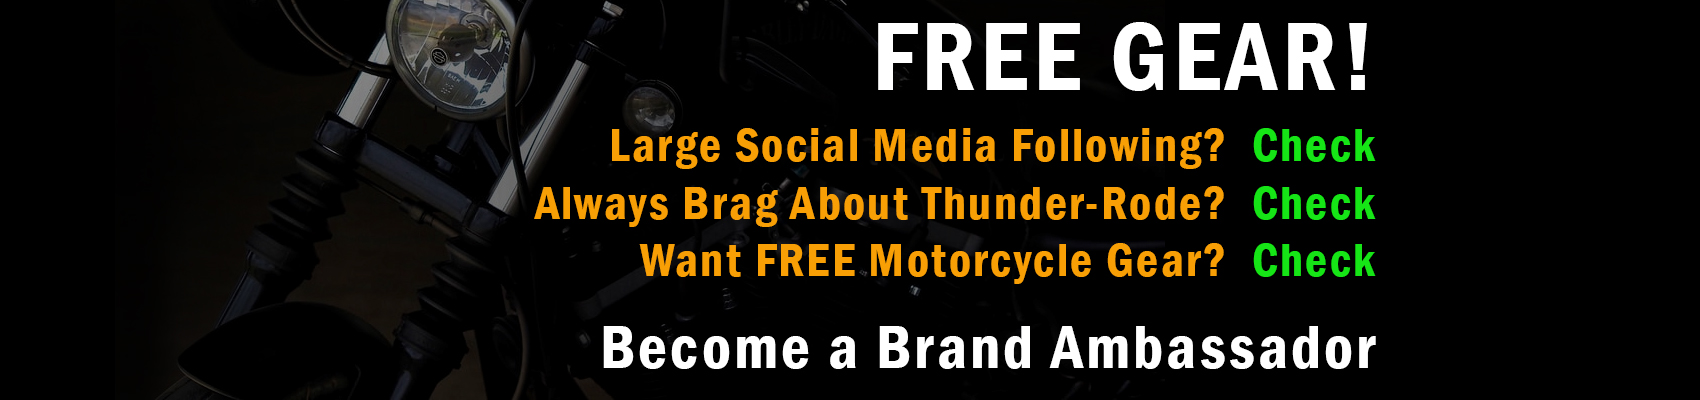 Free Motorcycle Gear as a Brand Ambassador